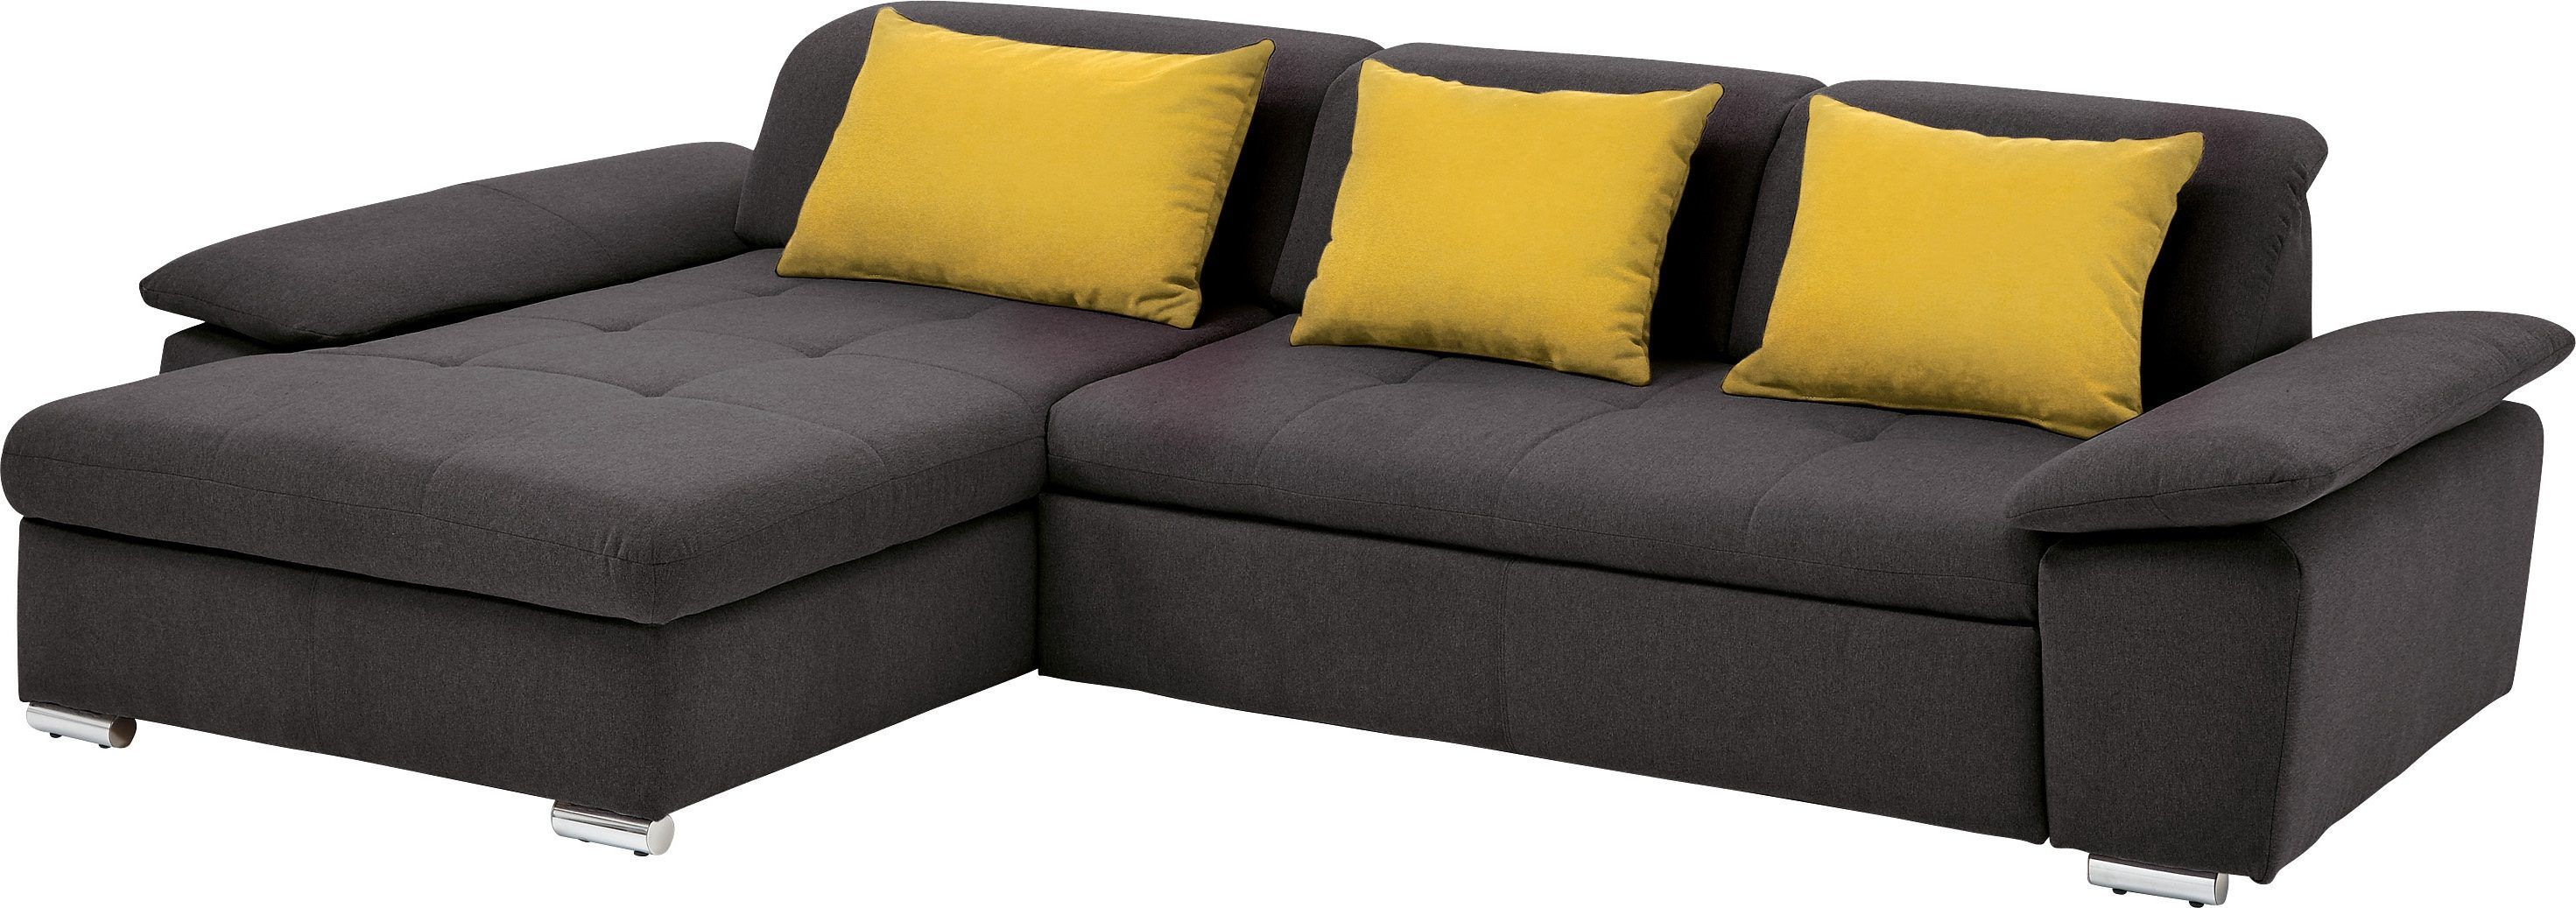 Interio Sofa Erfahrungen Musterring Eckcouch Cheap Full Size Of One Savona Schlafen Select